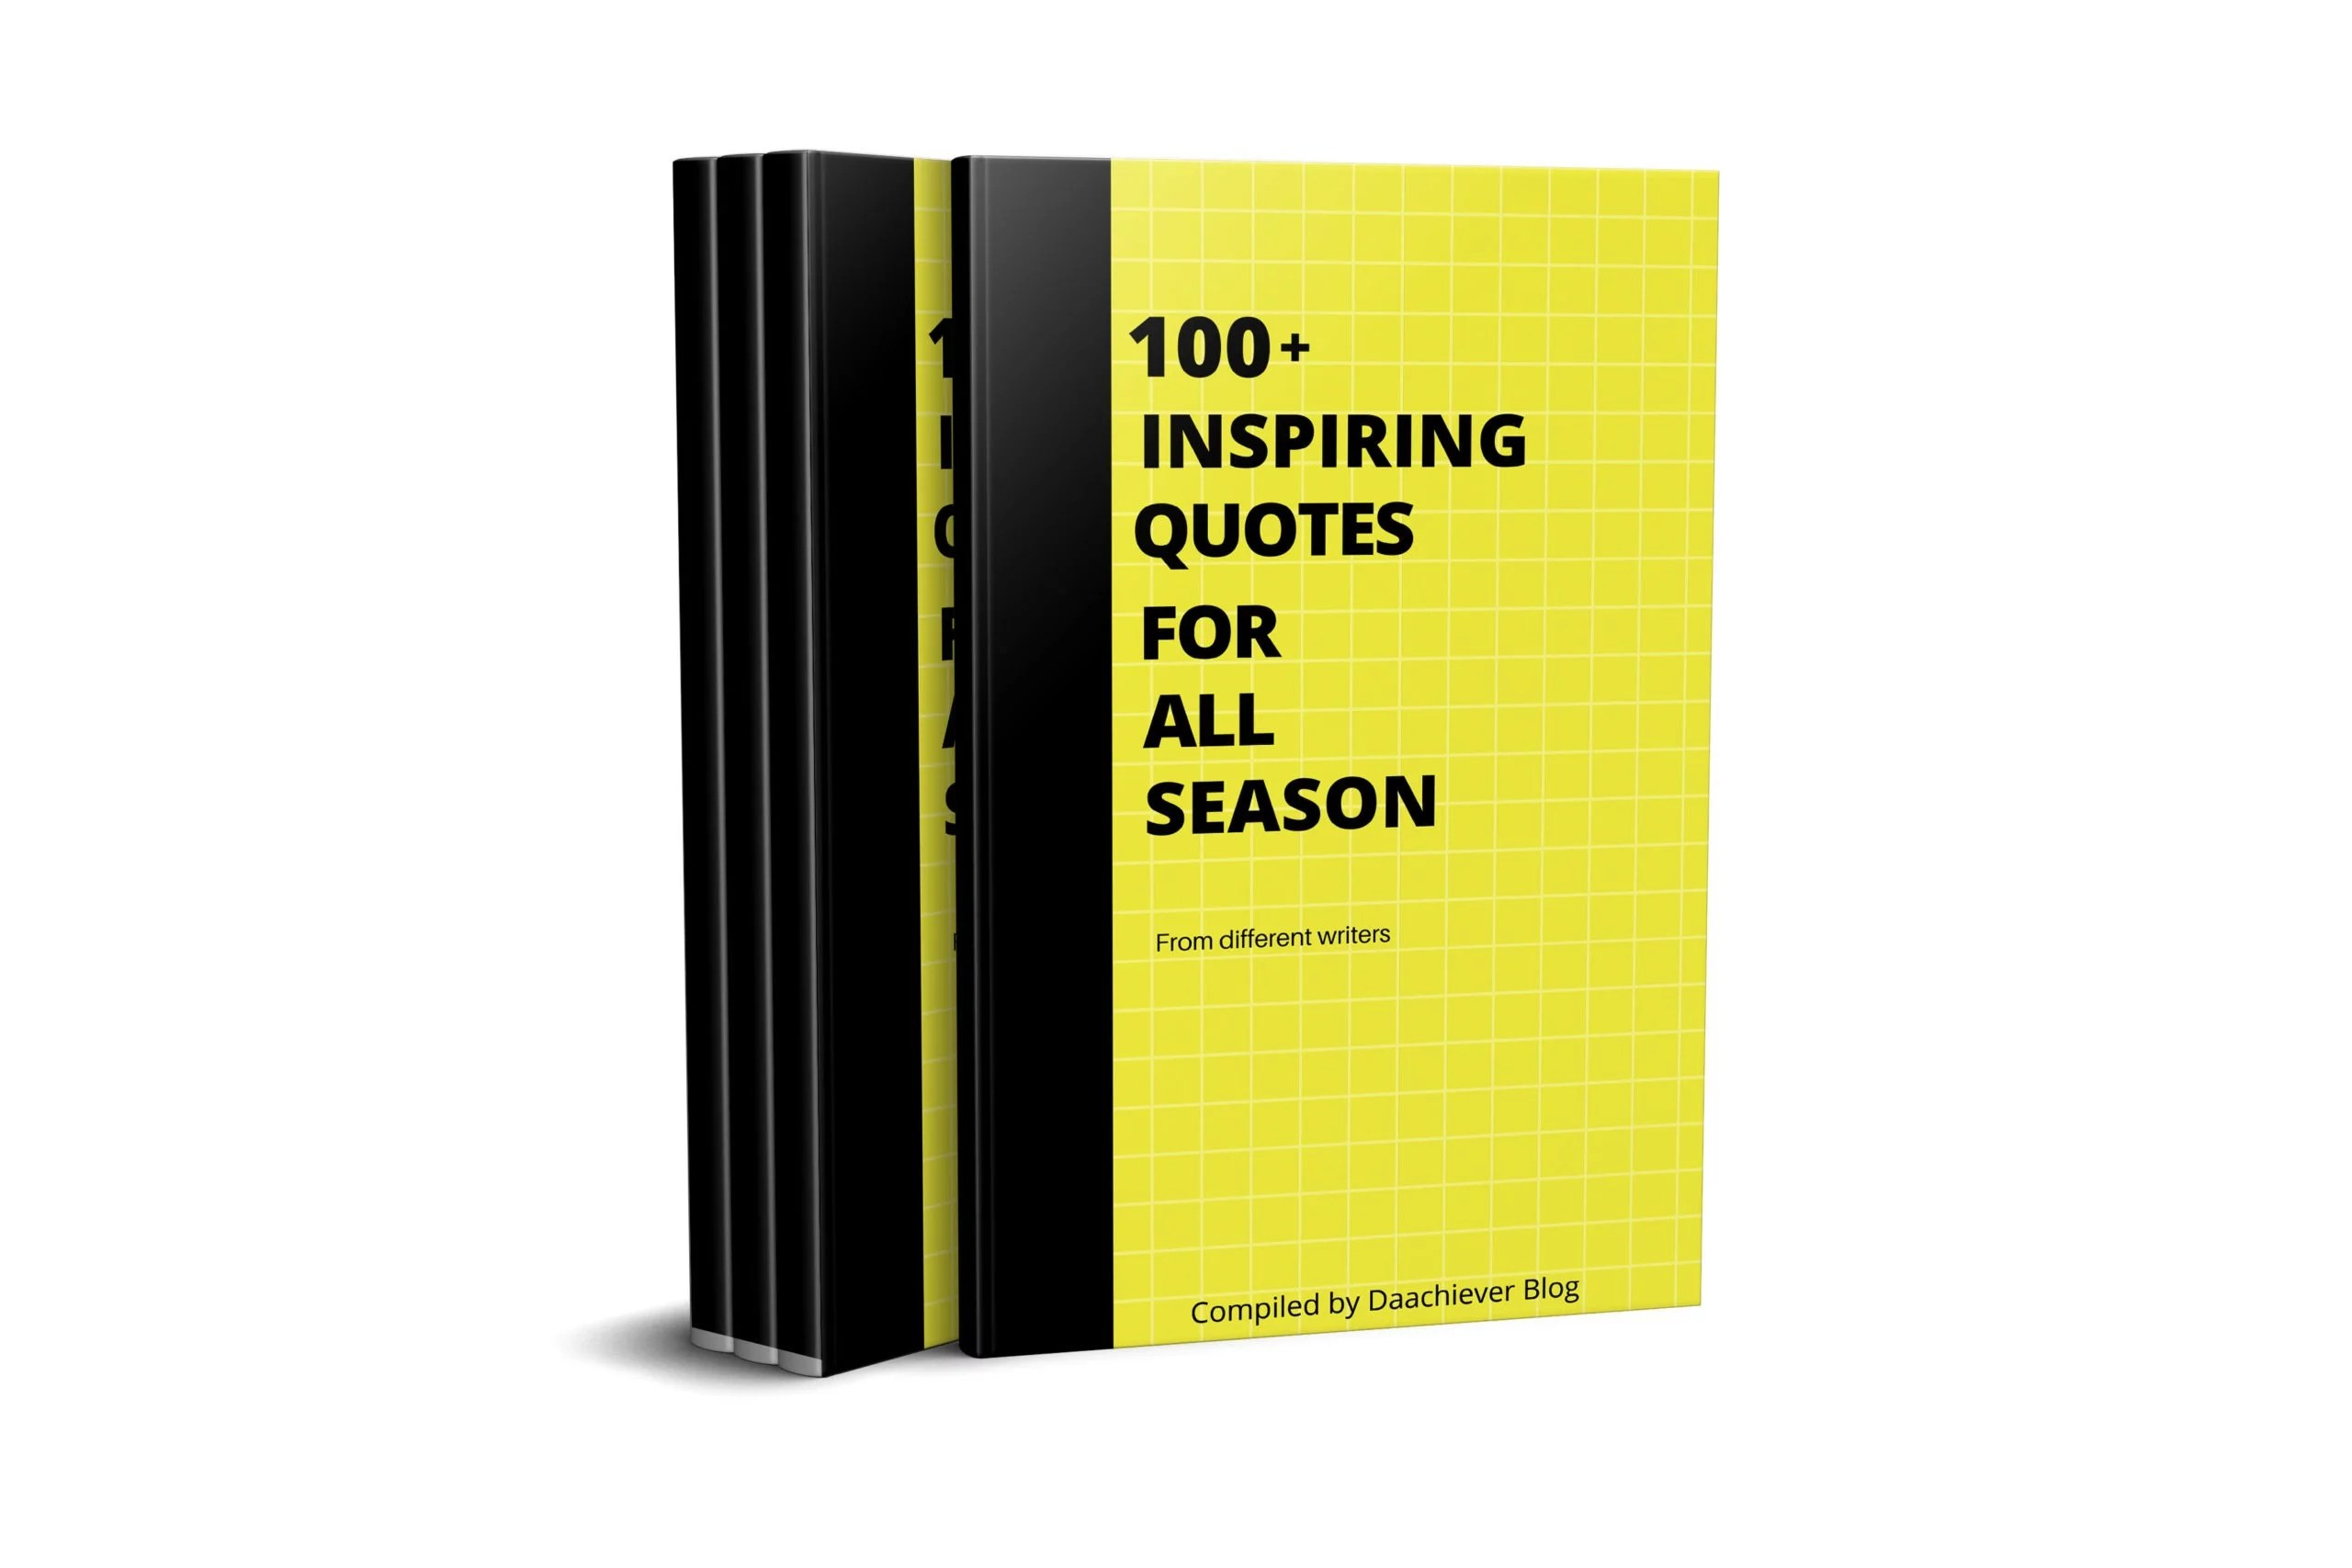 100+ Inspiring Quotes for All Seasons: New Book Alert